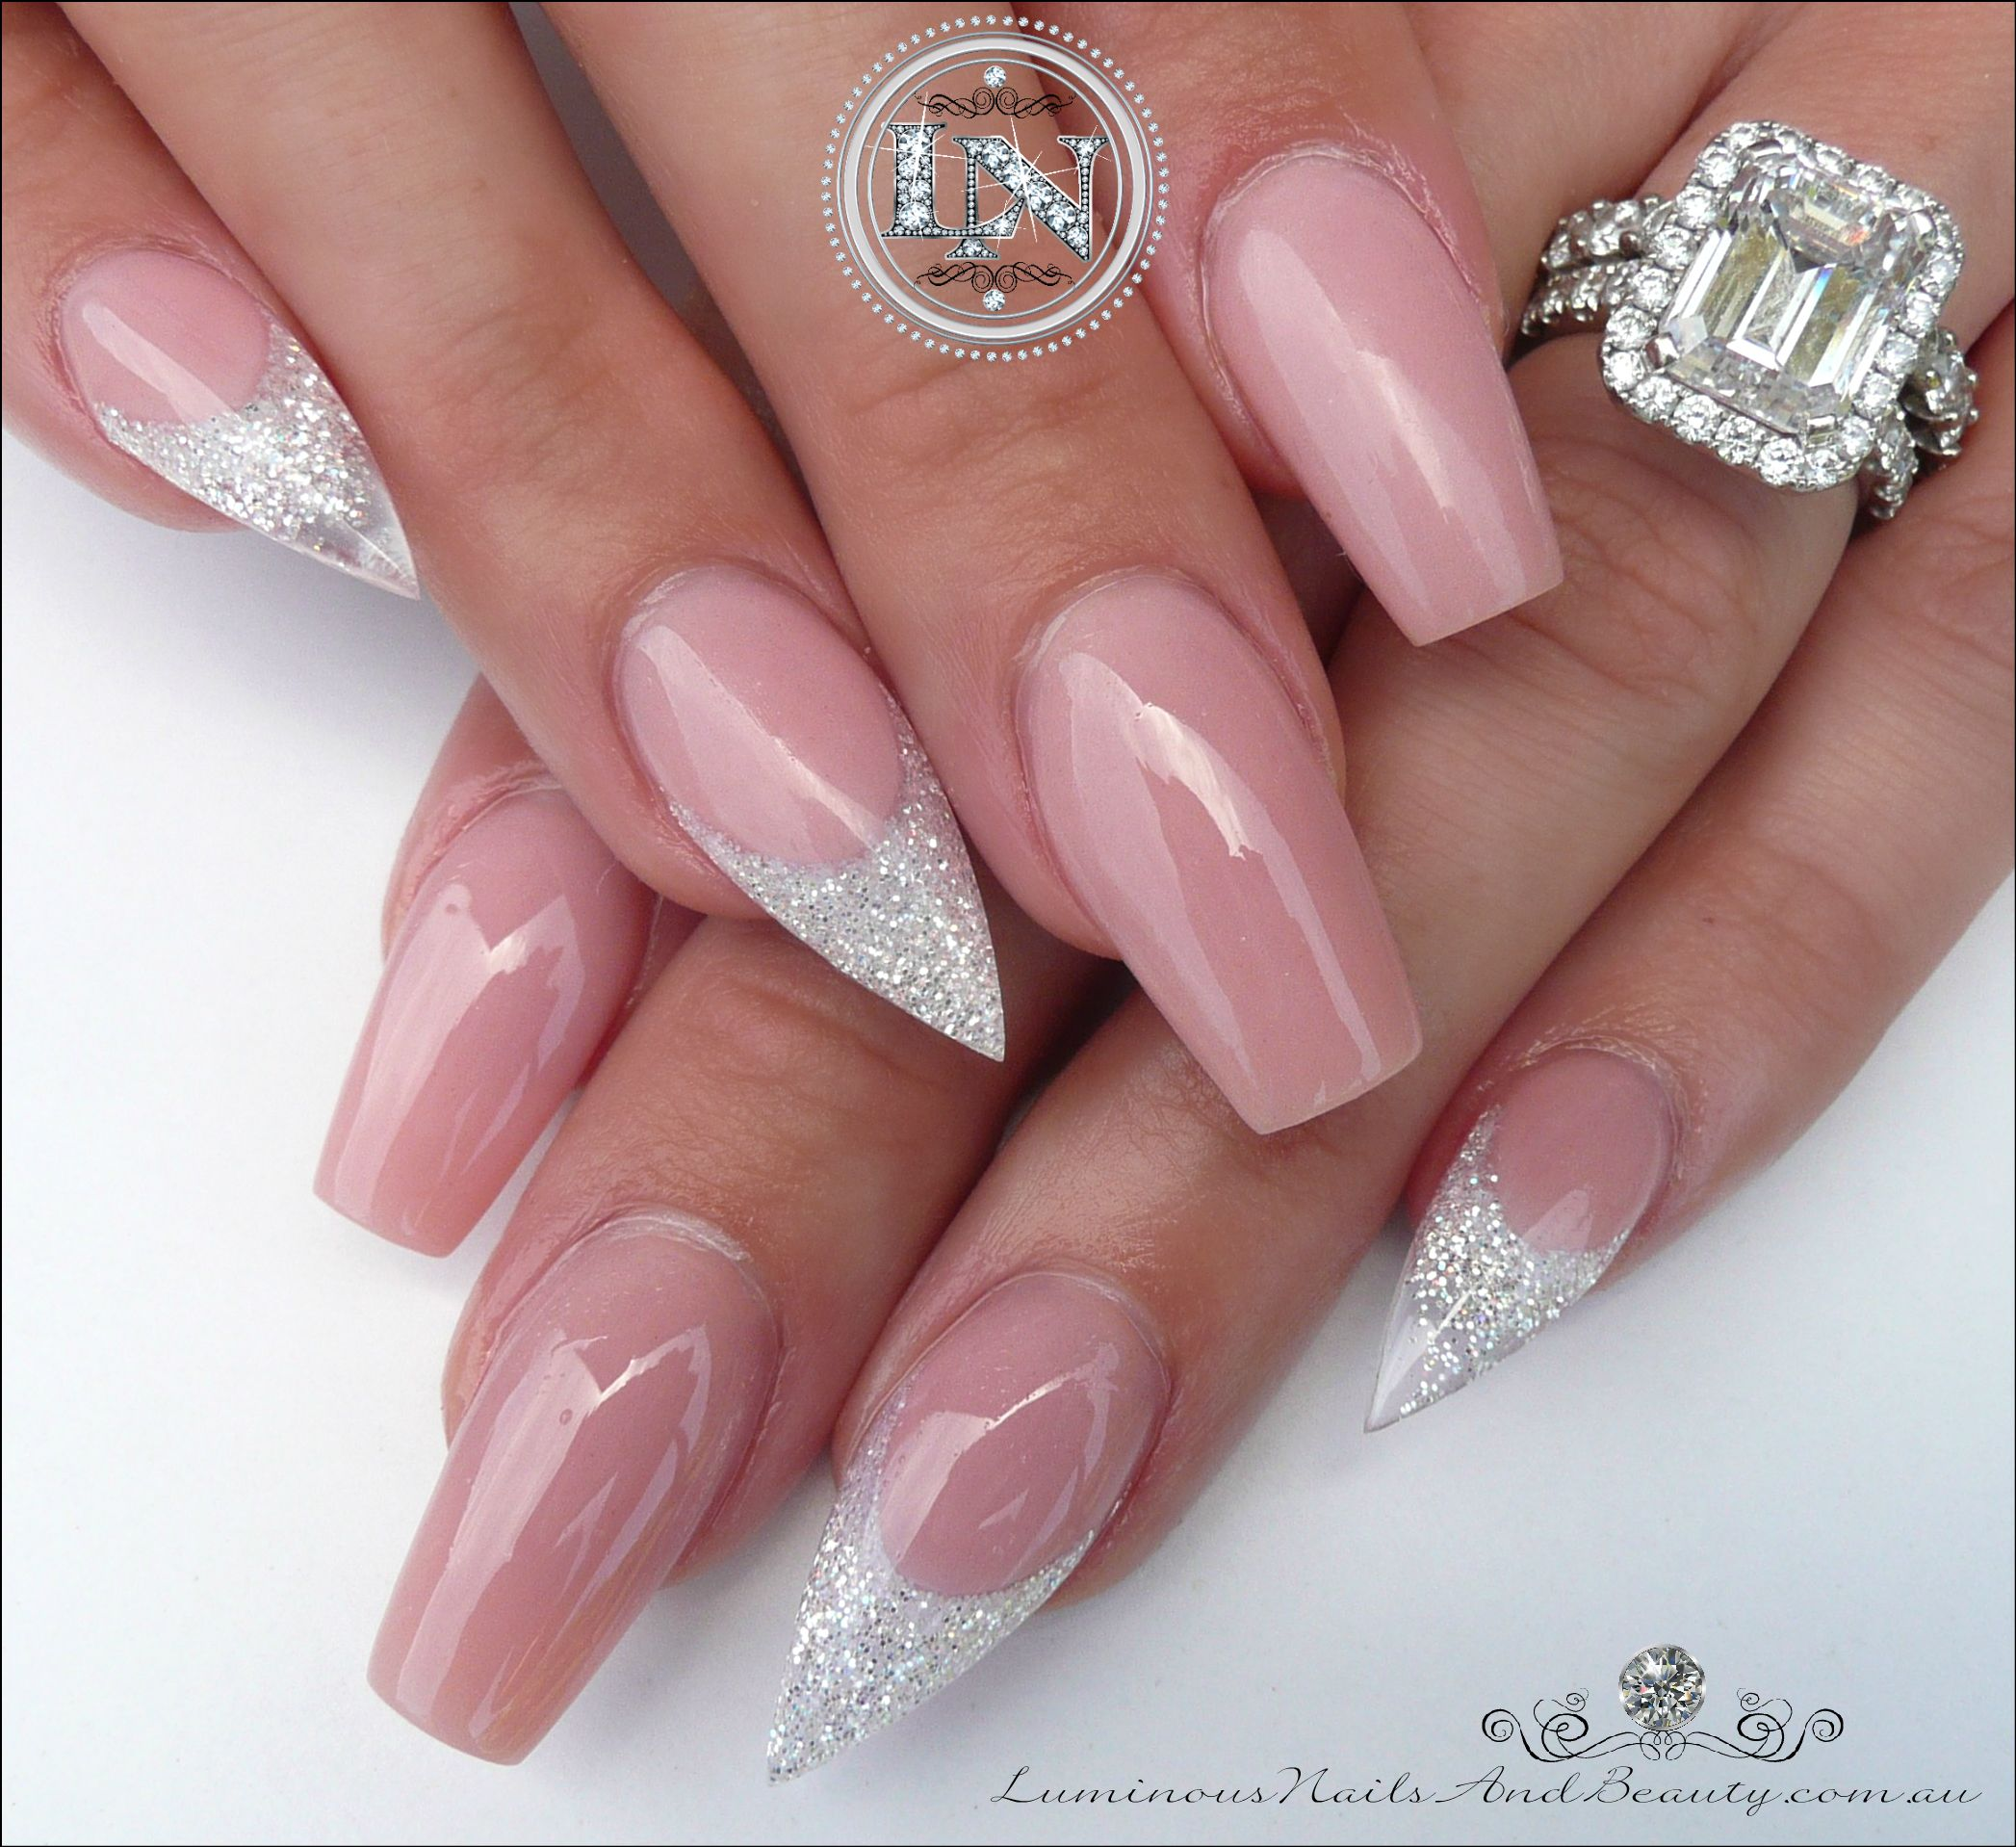 Stunning Nude Acrylic Nails with Glittery White Glitter. | nude ...